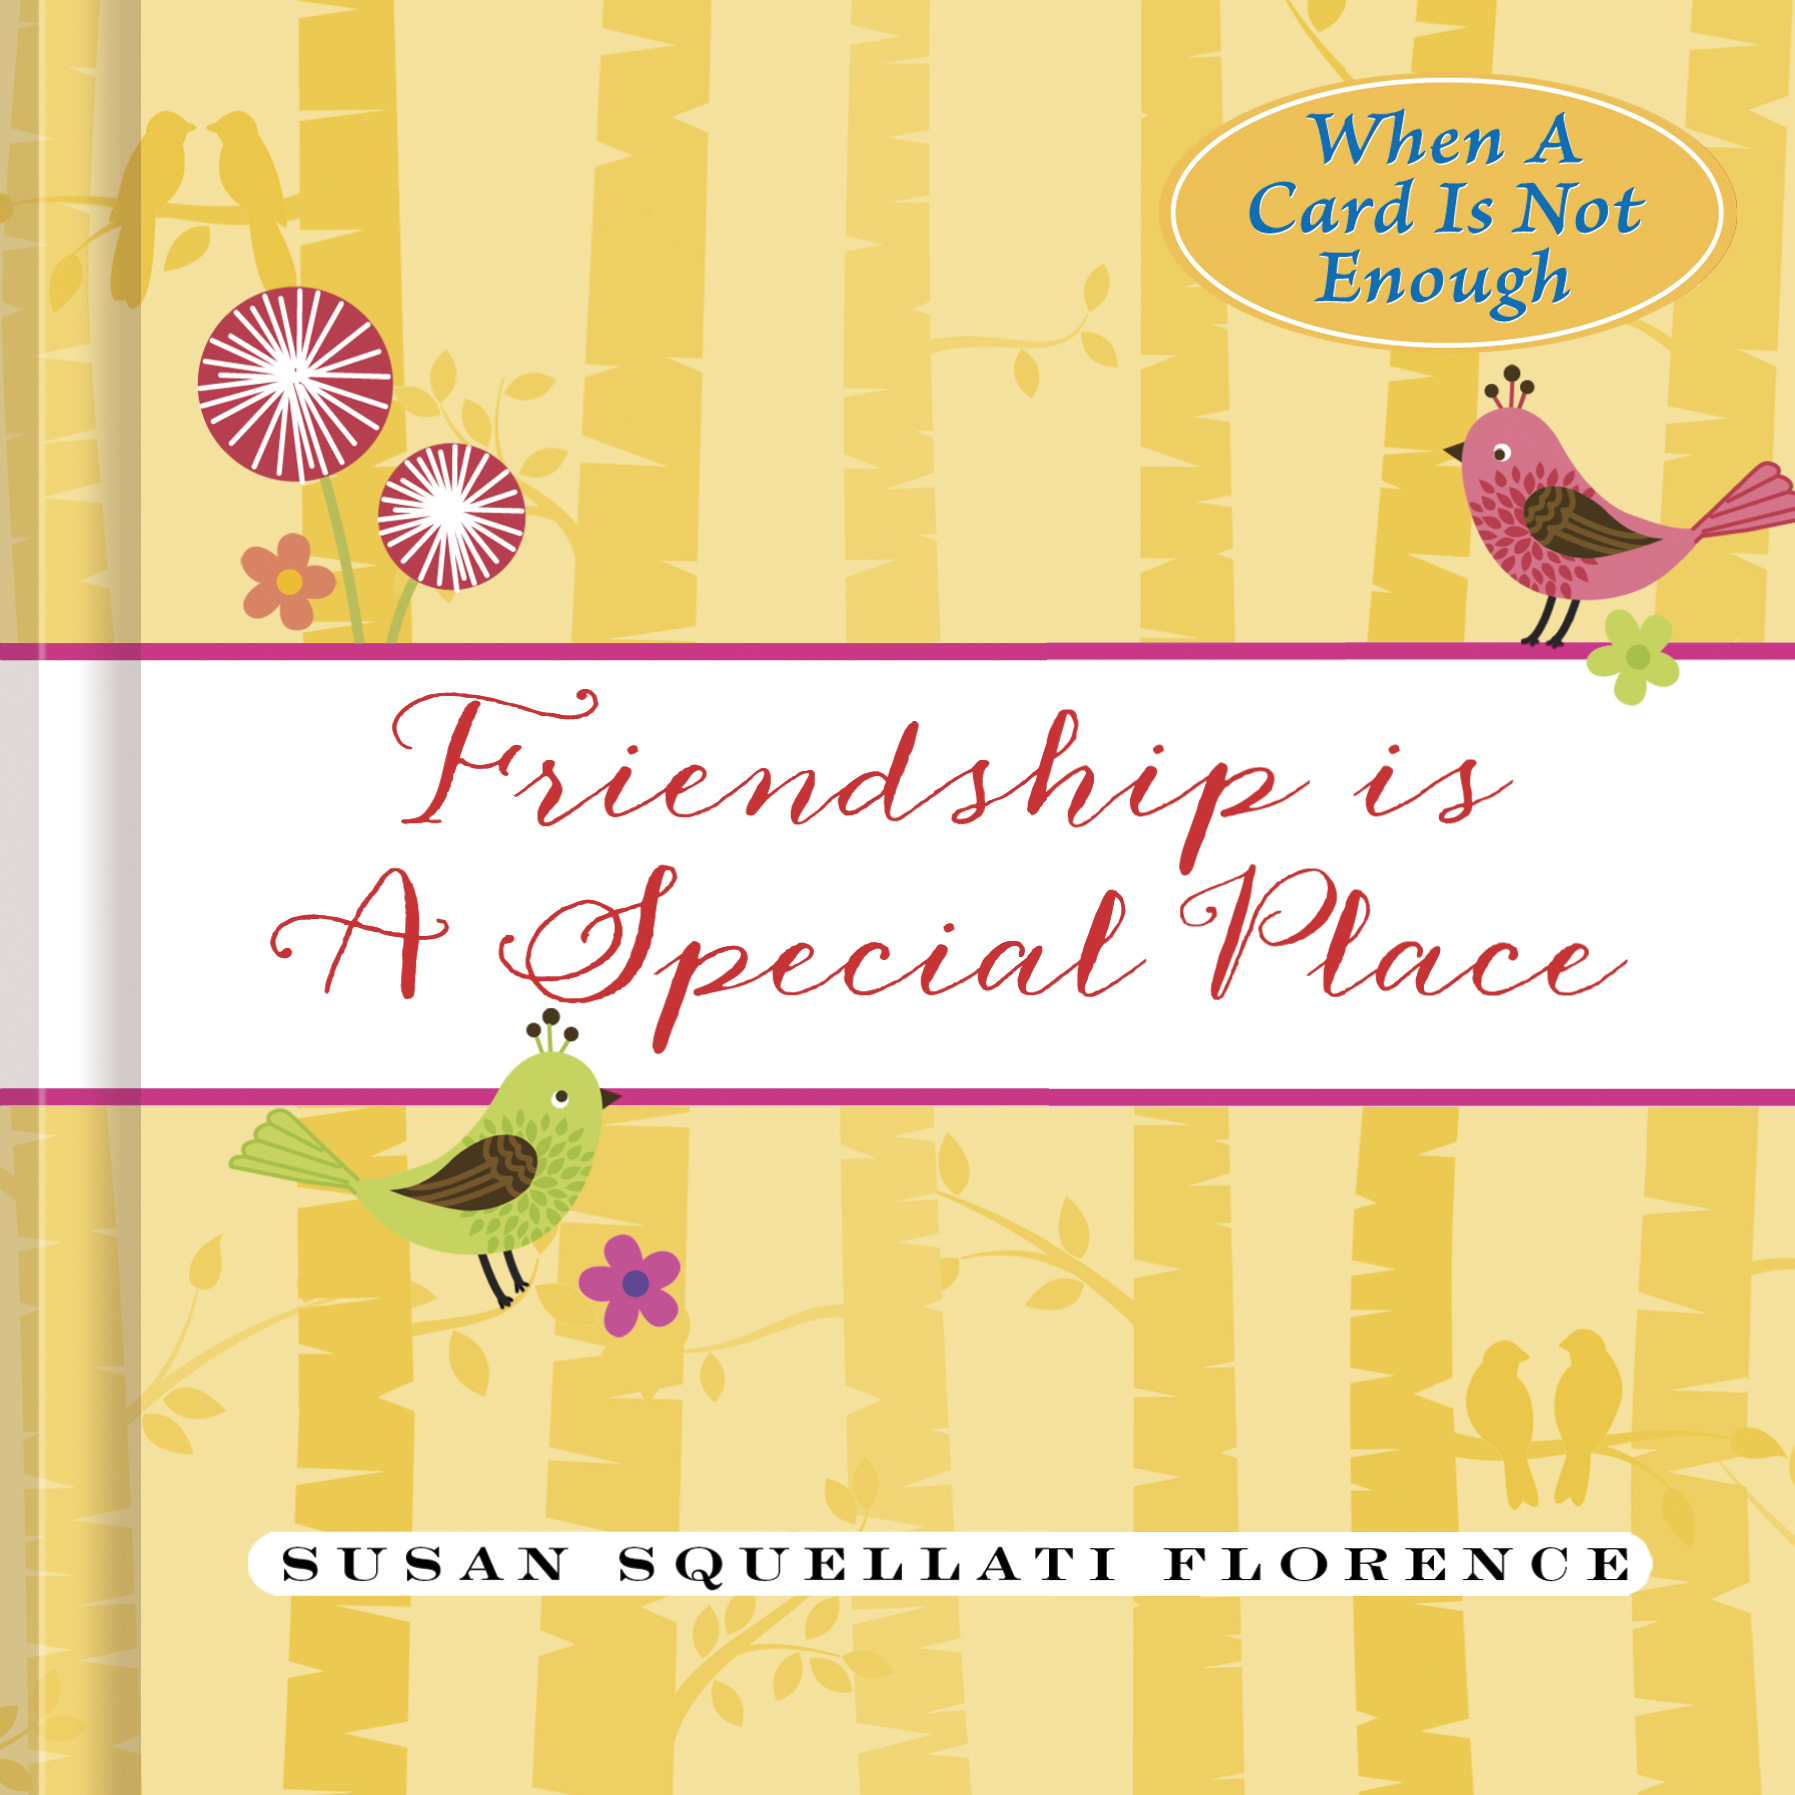 Copy of Friendship is a Special Plade